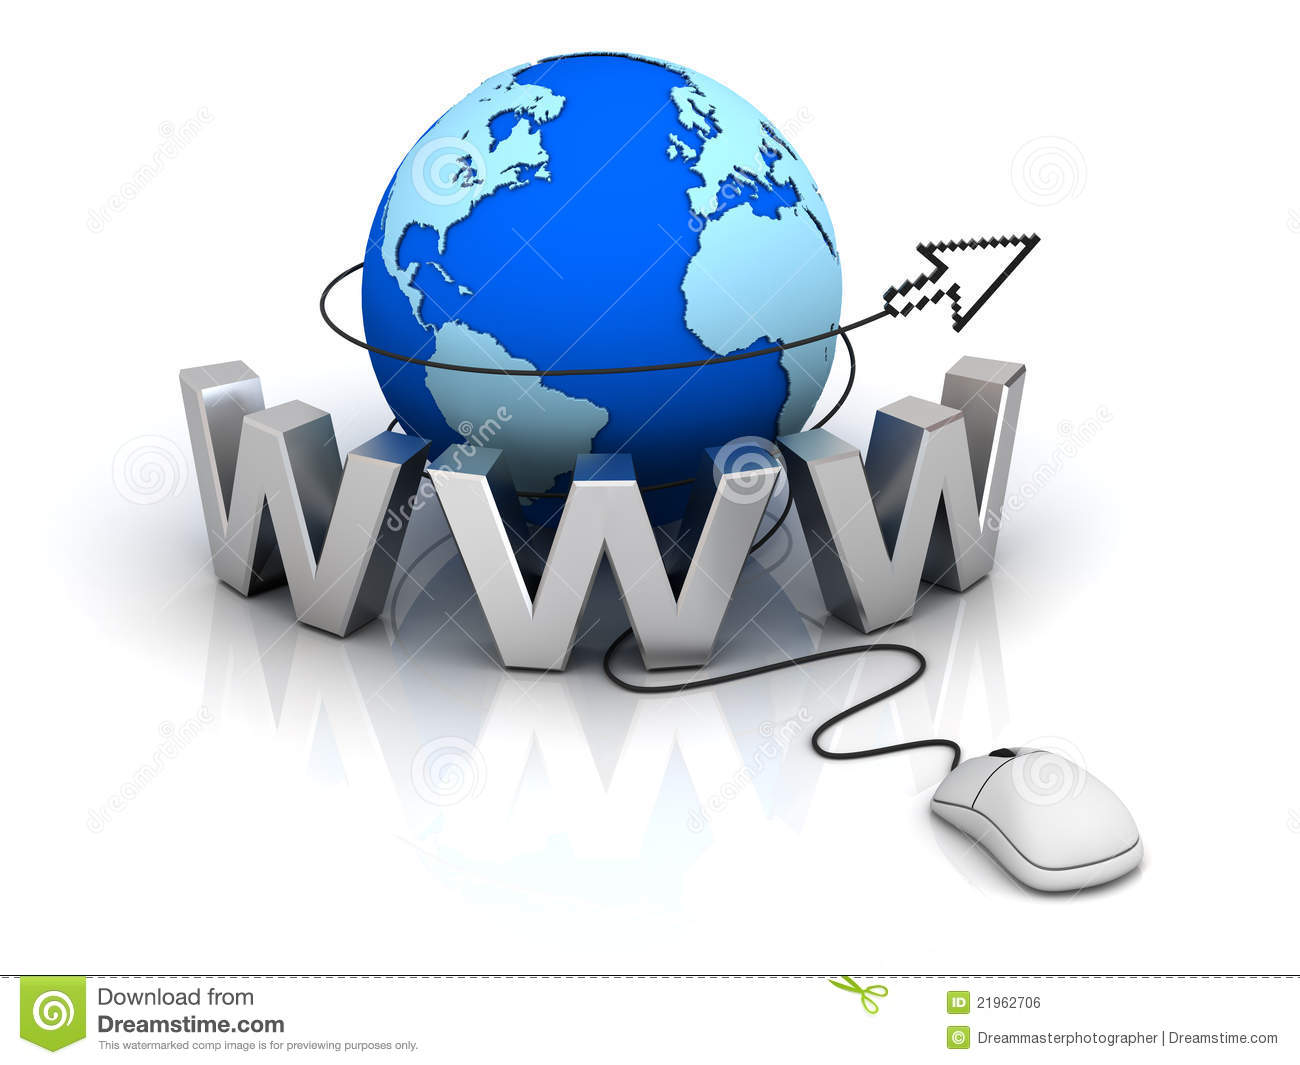 an analysis of the definitions of the internet and the world wide web Definitions search synonyms  business, organization, or individual that provides web pages, entertainment, or documents to the world wide web or internet.